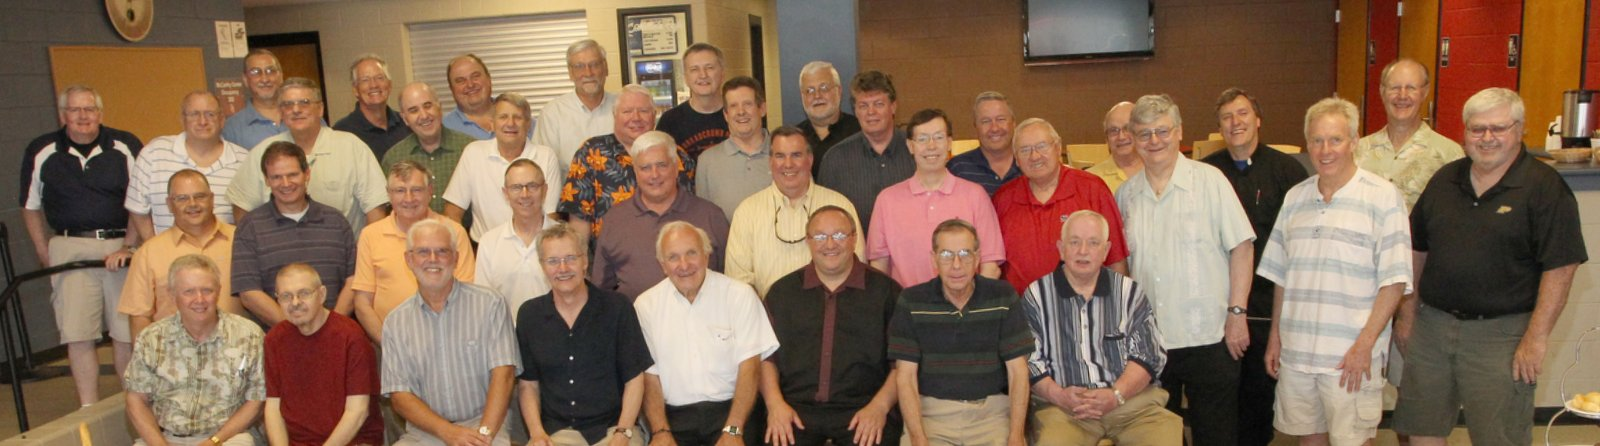 Augustinian Seminary Alumni Picnic 2013 at St. Rita High School, Chicago. Click the image to zoom in.